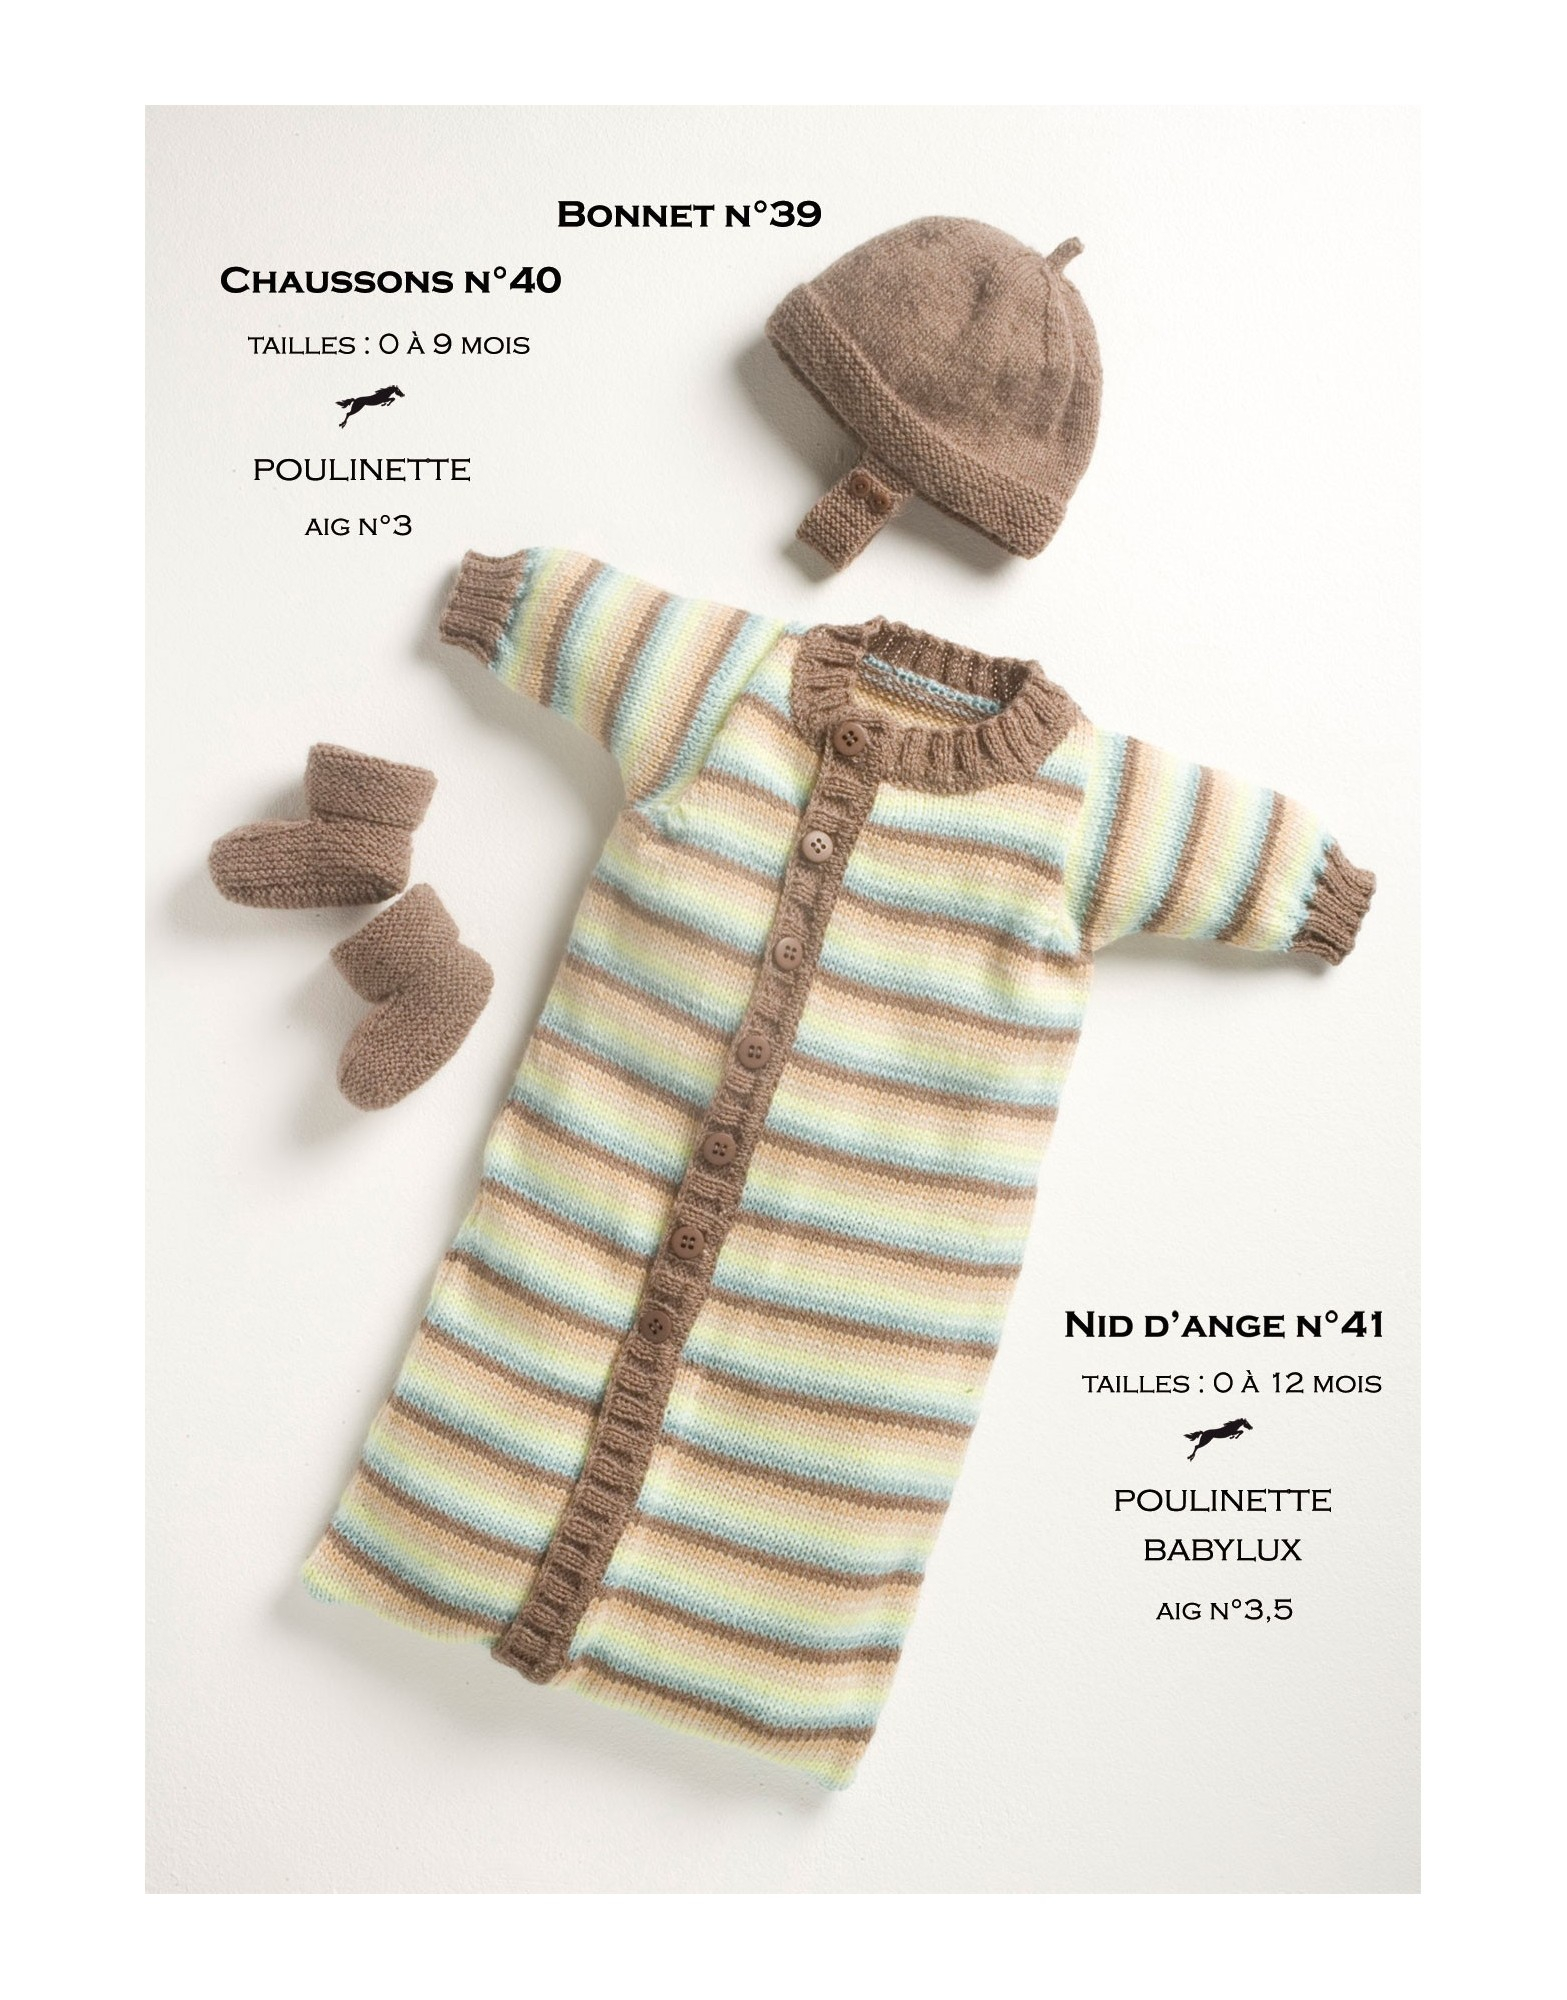 New Born Knitting Patterns Model Ba Sleeping Bag Cb13 41 Free Knitting Pattern Cheval Blanc